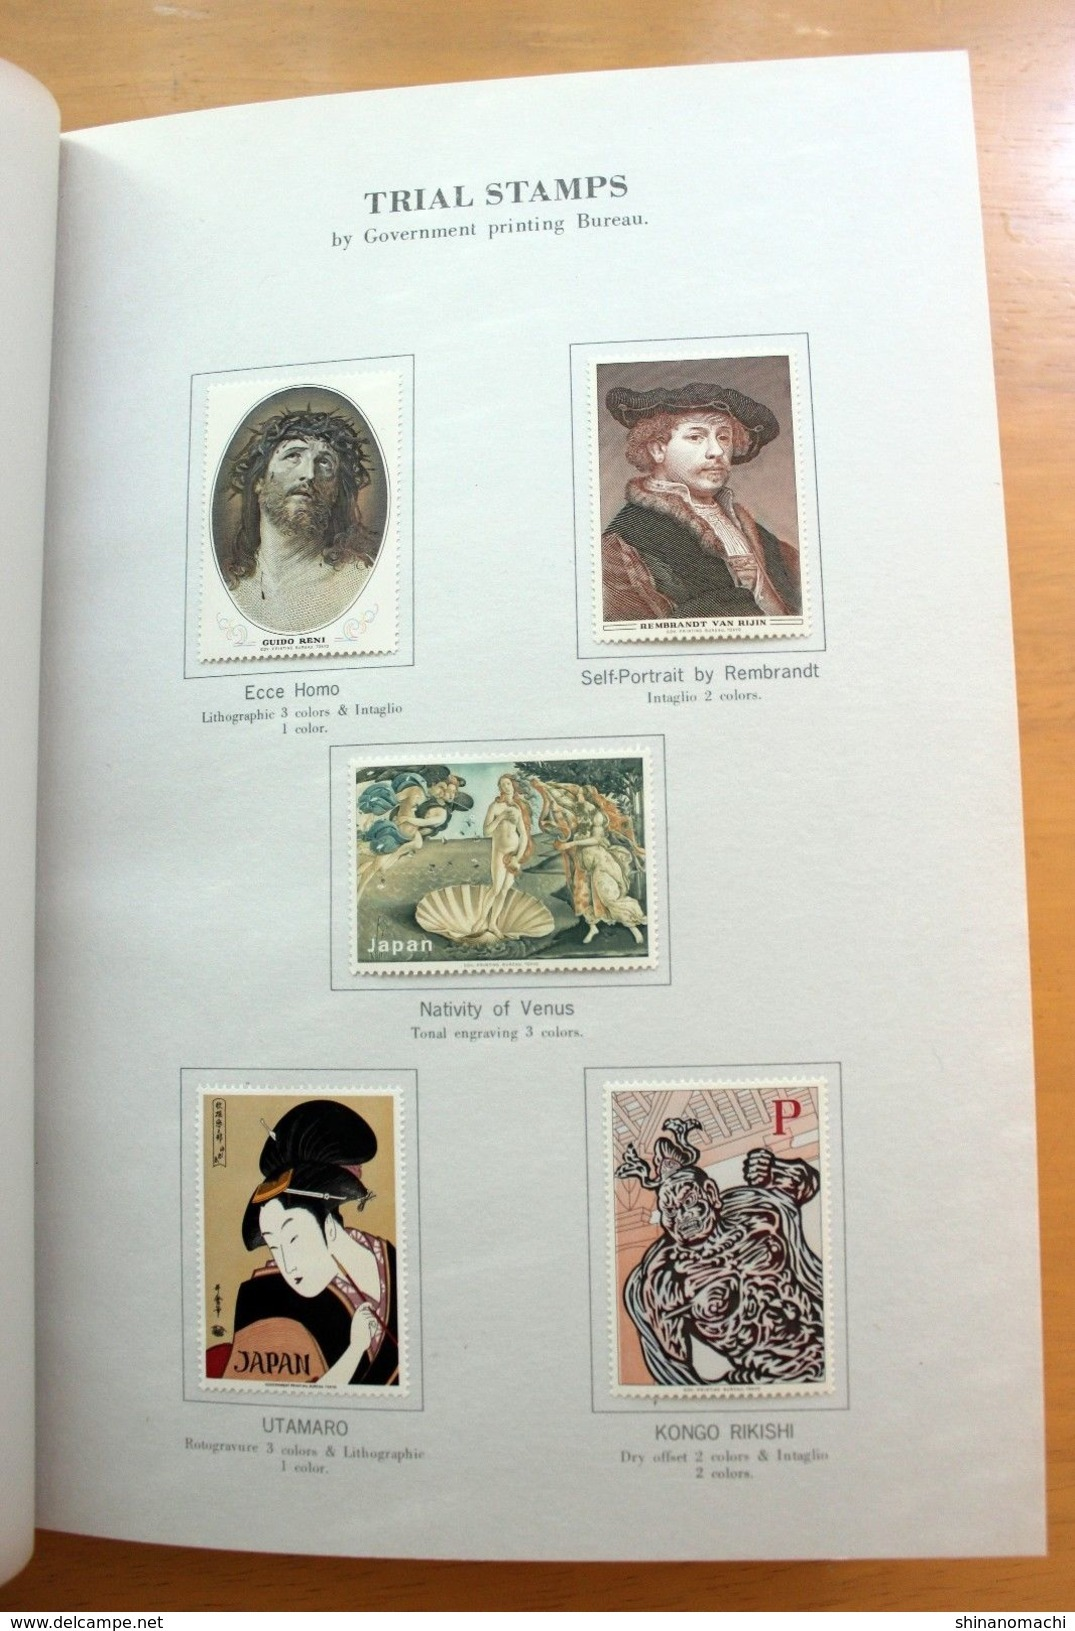 Western Specimen Stamps Printed By Japanese Printing Bureau - Ministry Of Finance  - Unreserved!!! - Collections, Lots & Series